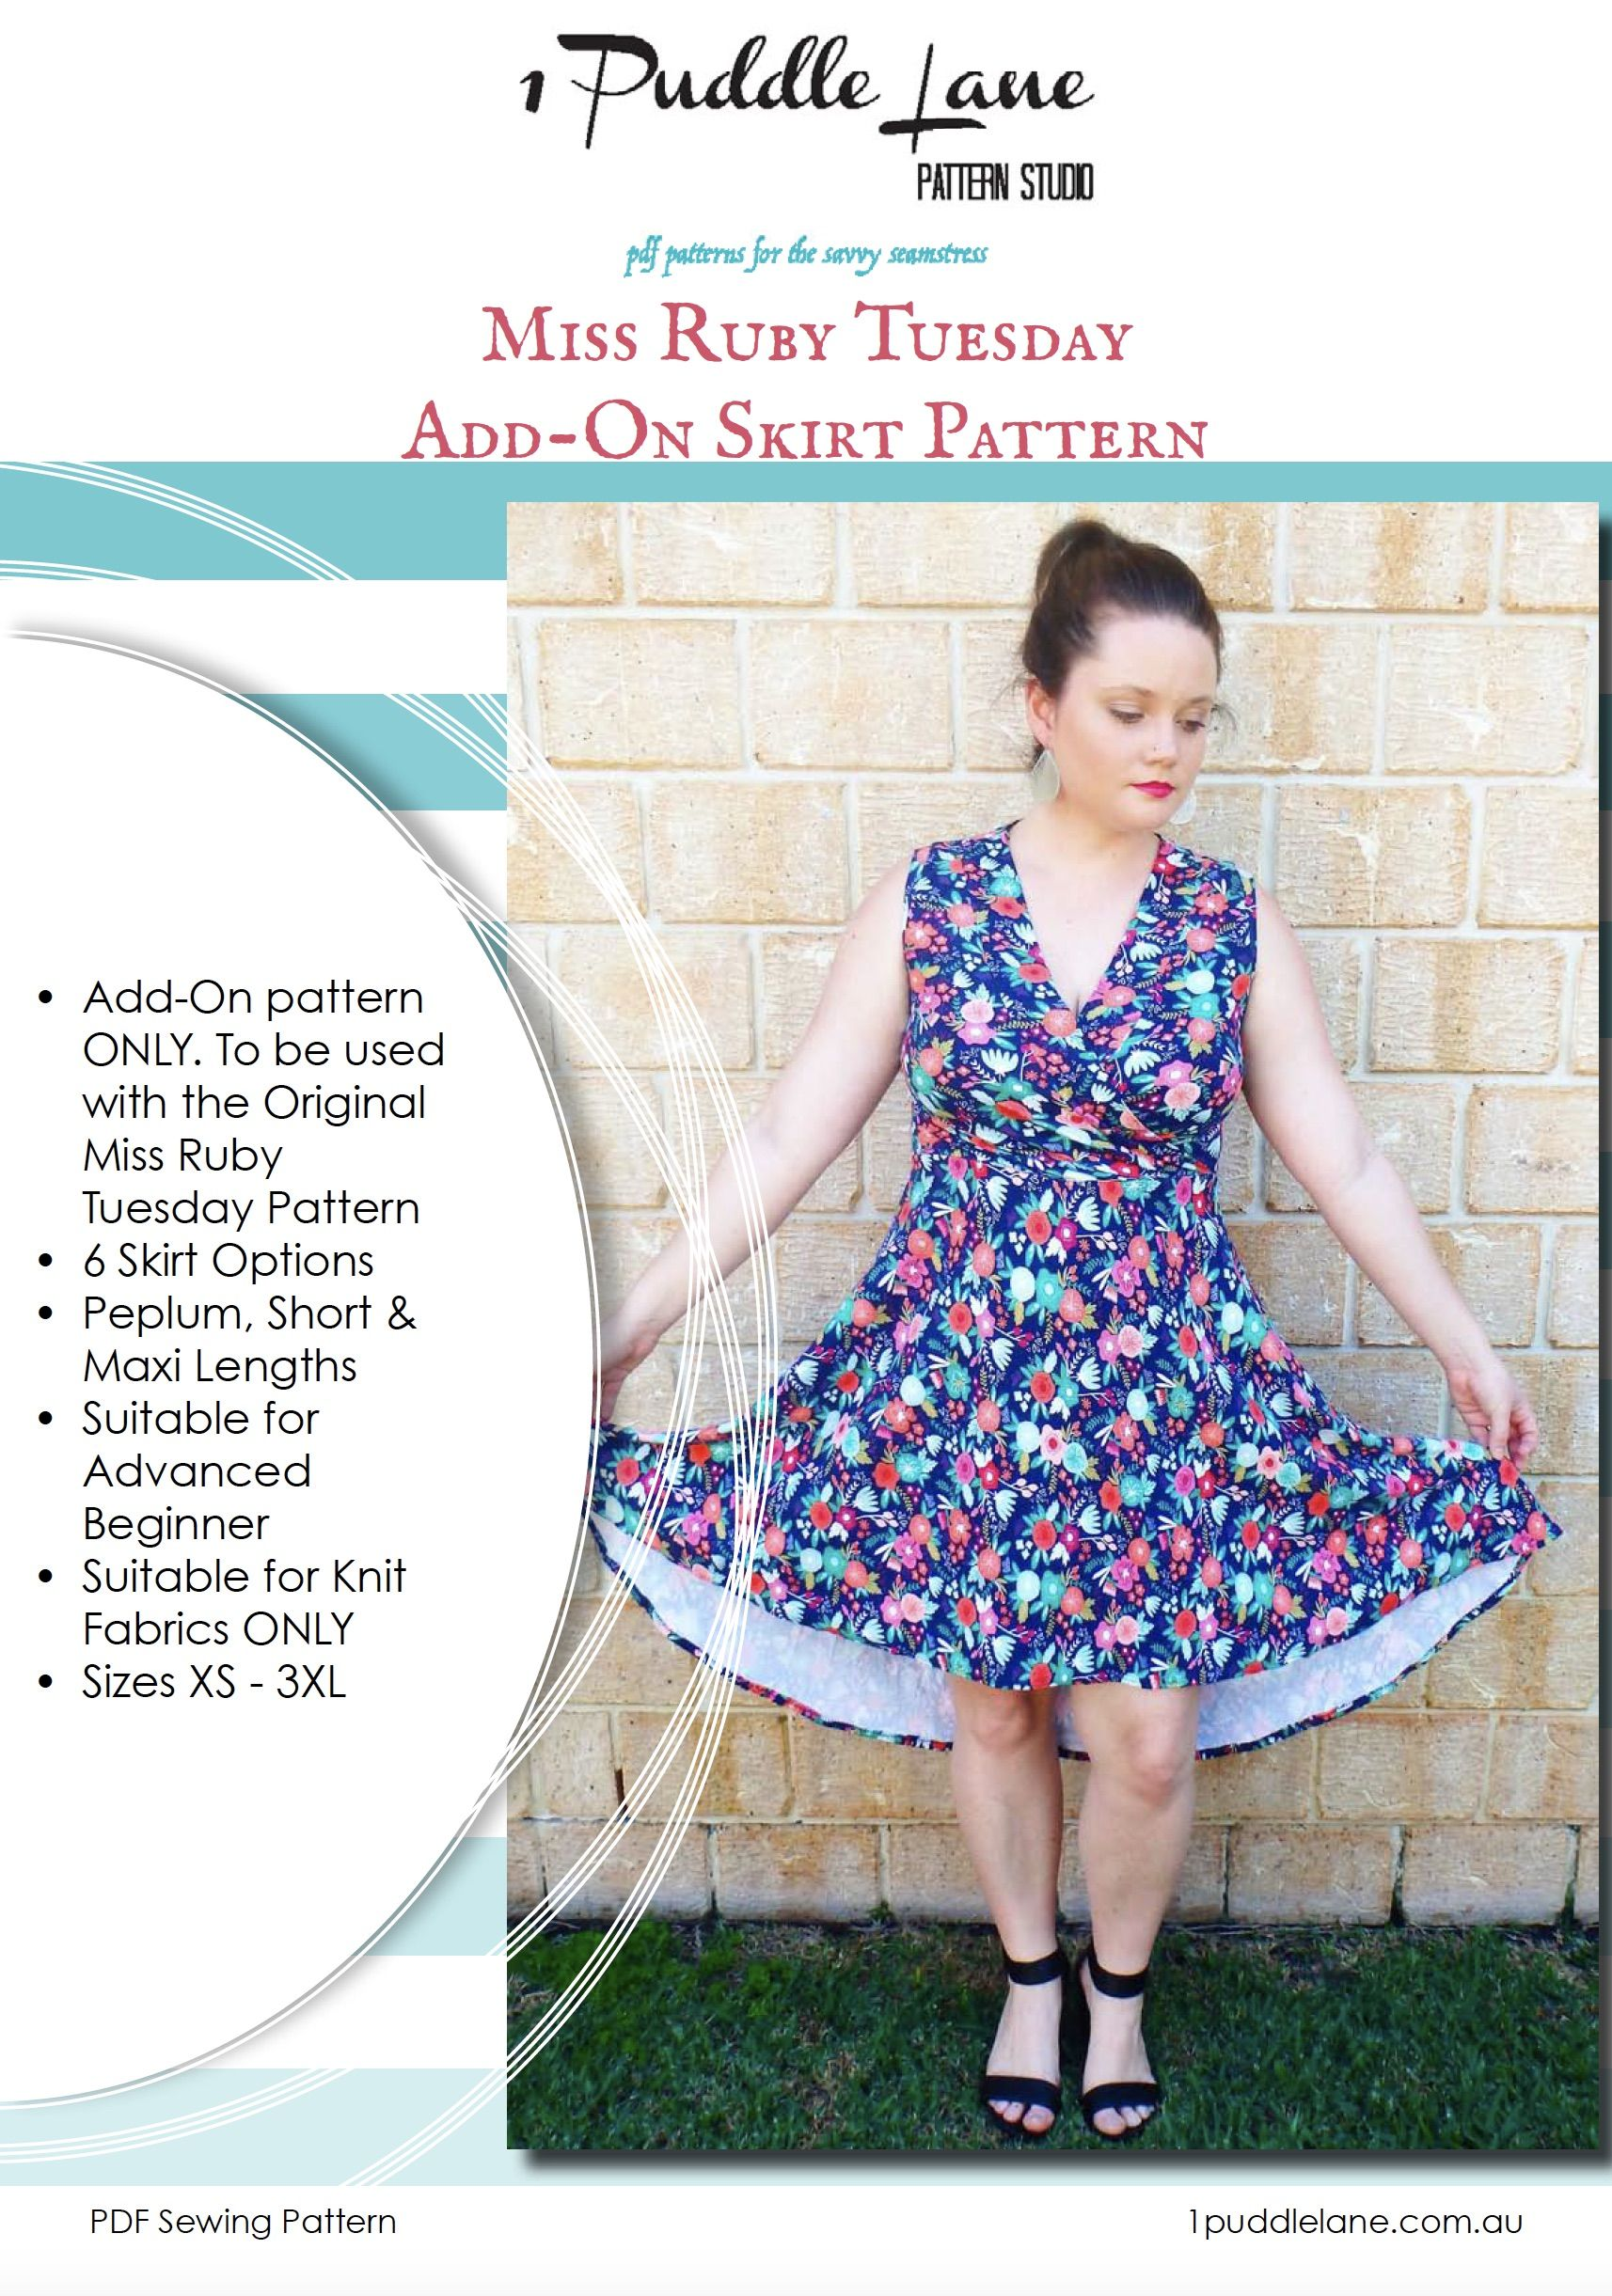 MiSS RUBY TUESDAY ADD-ON PATTERN - SKIRTS | Other patterns